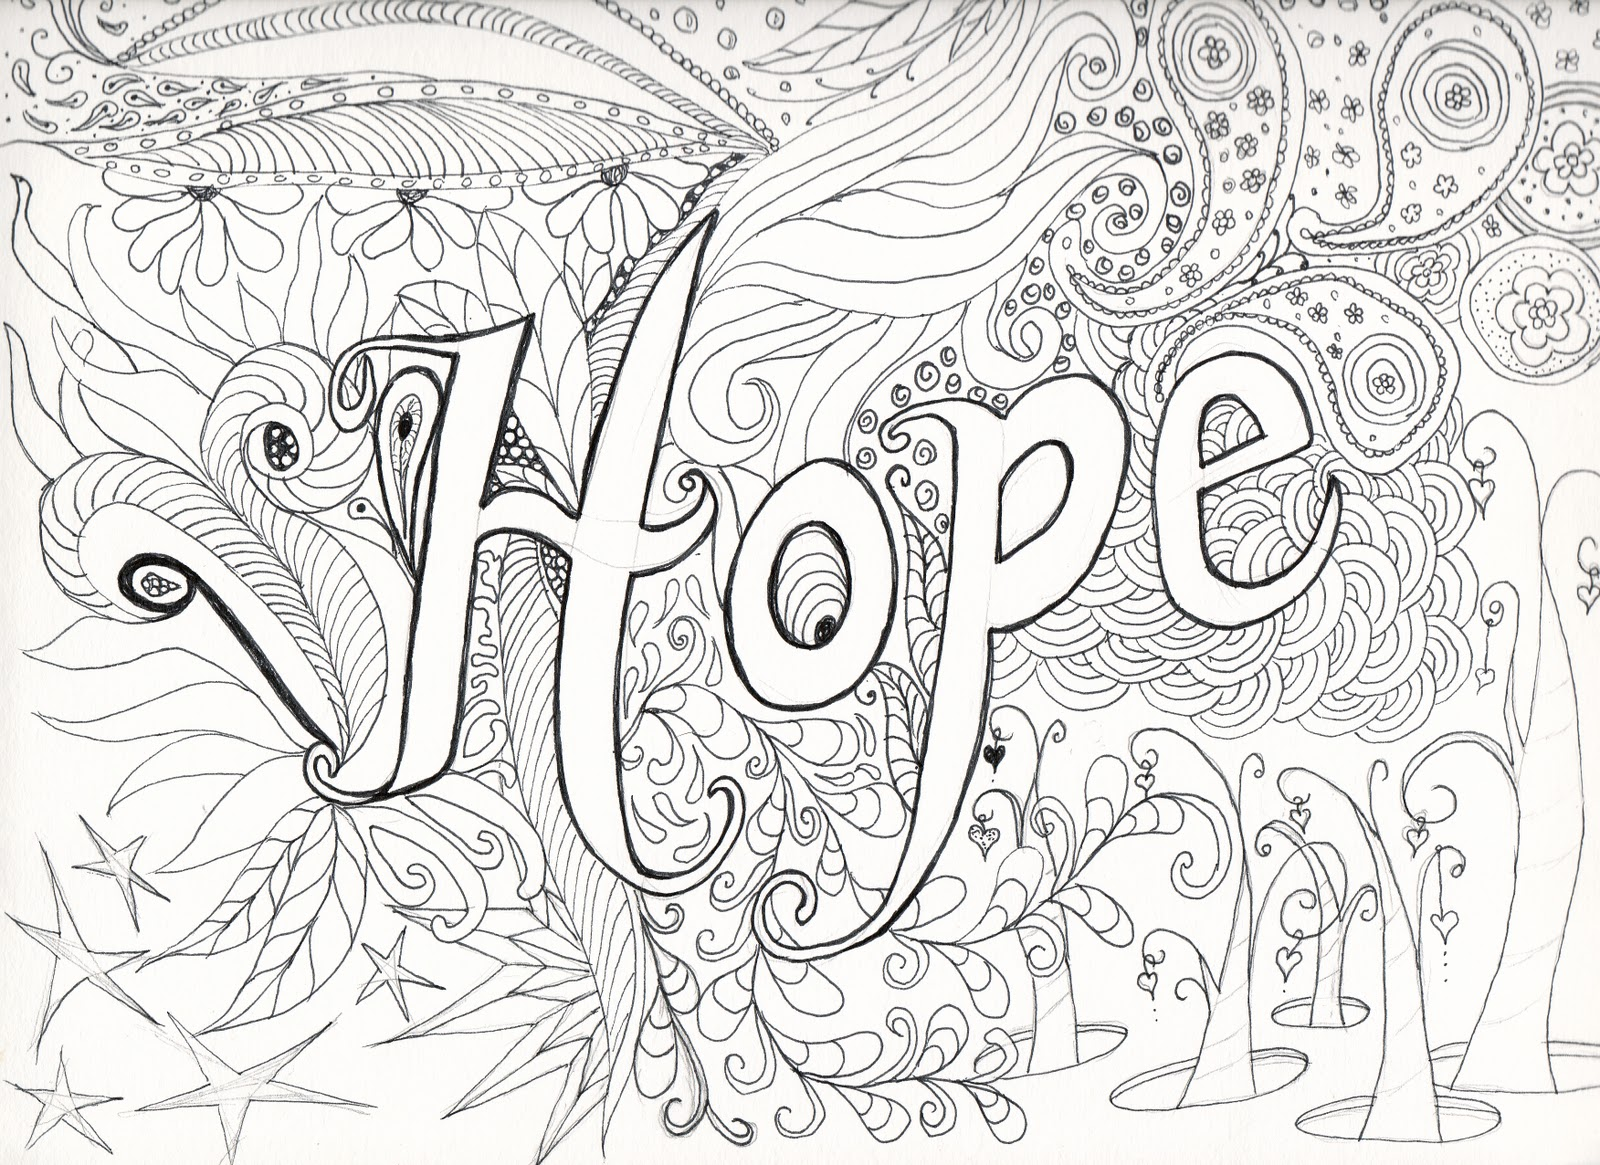 Uncategorized Complex Coloring Page hard coloring pages for adults best kids complex pages